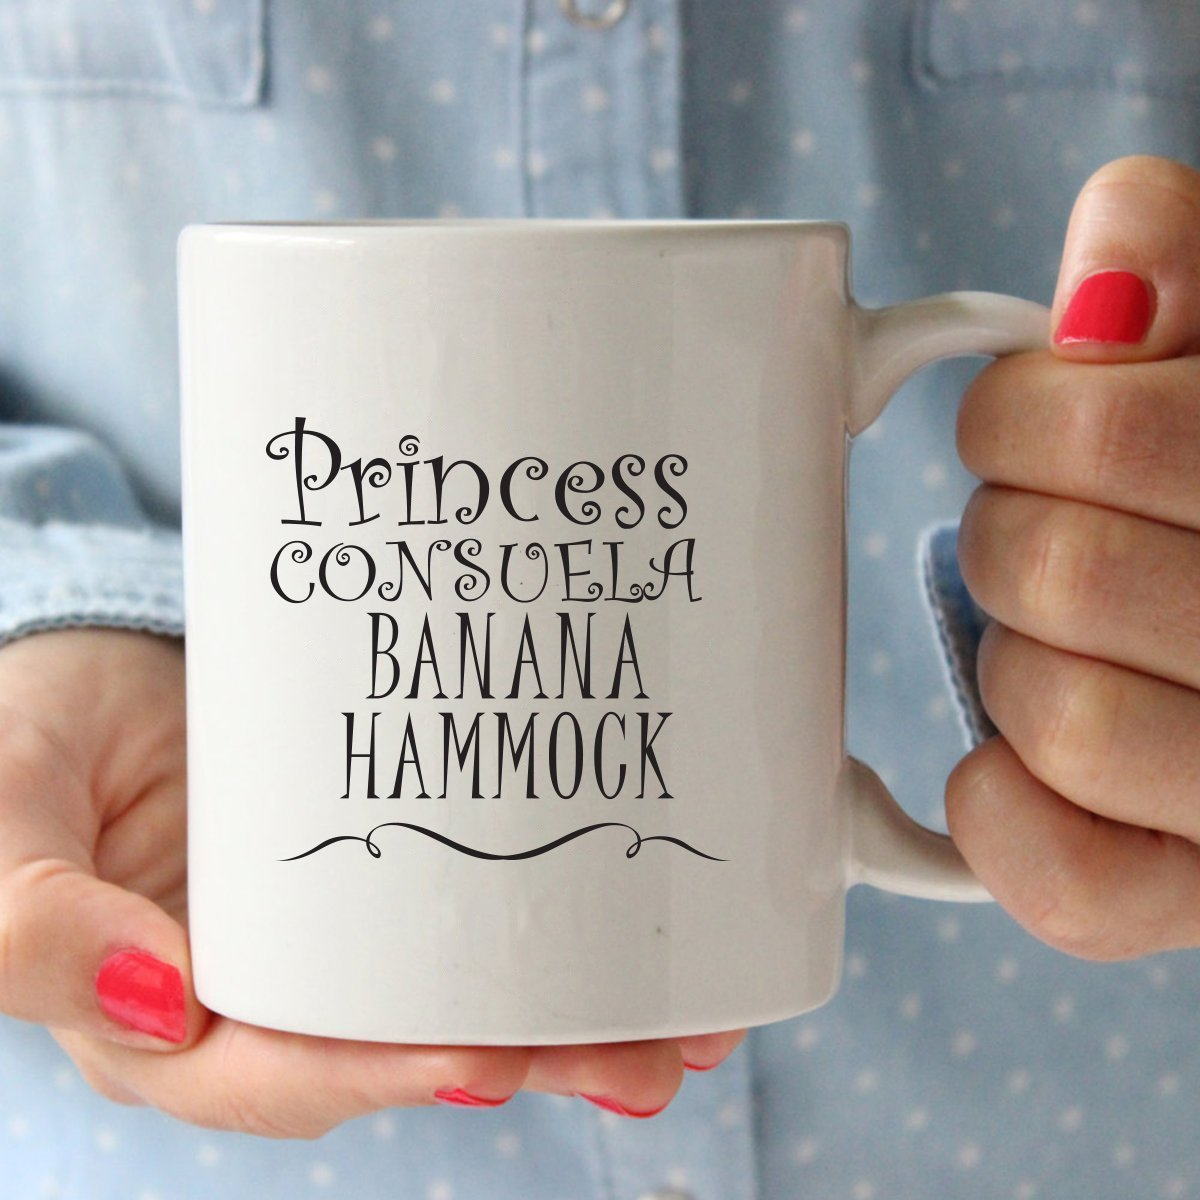 Princess Consuela Banana Hammock & Crap Bag Couples Funny Coffee Mug Set 11oz - Friends TV Show Quote - Central Perk - Unique Gift For Boyfriend and Girlfriend - His and Hers Anniversary Present by Gelid (Image #2)